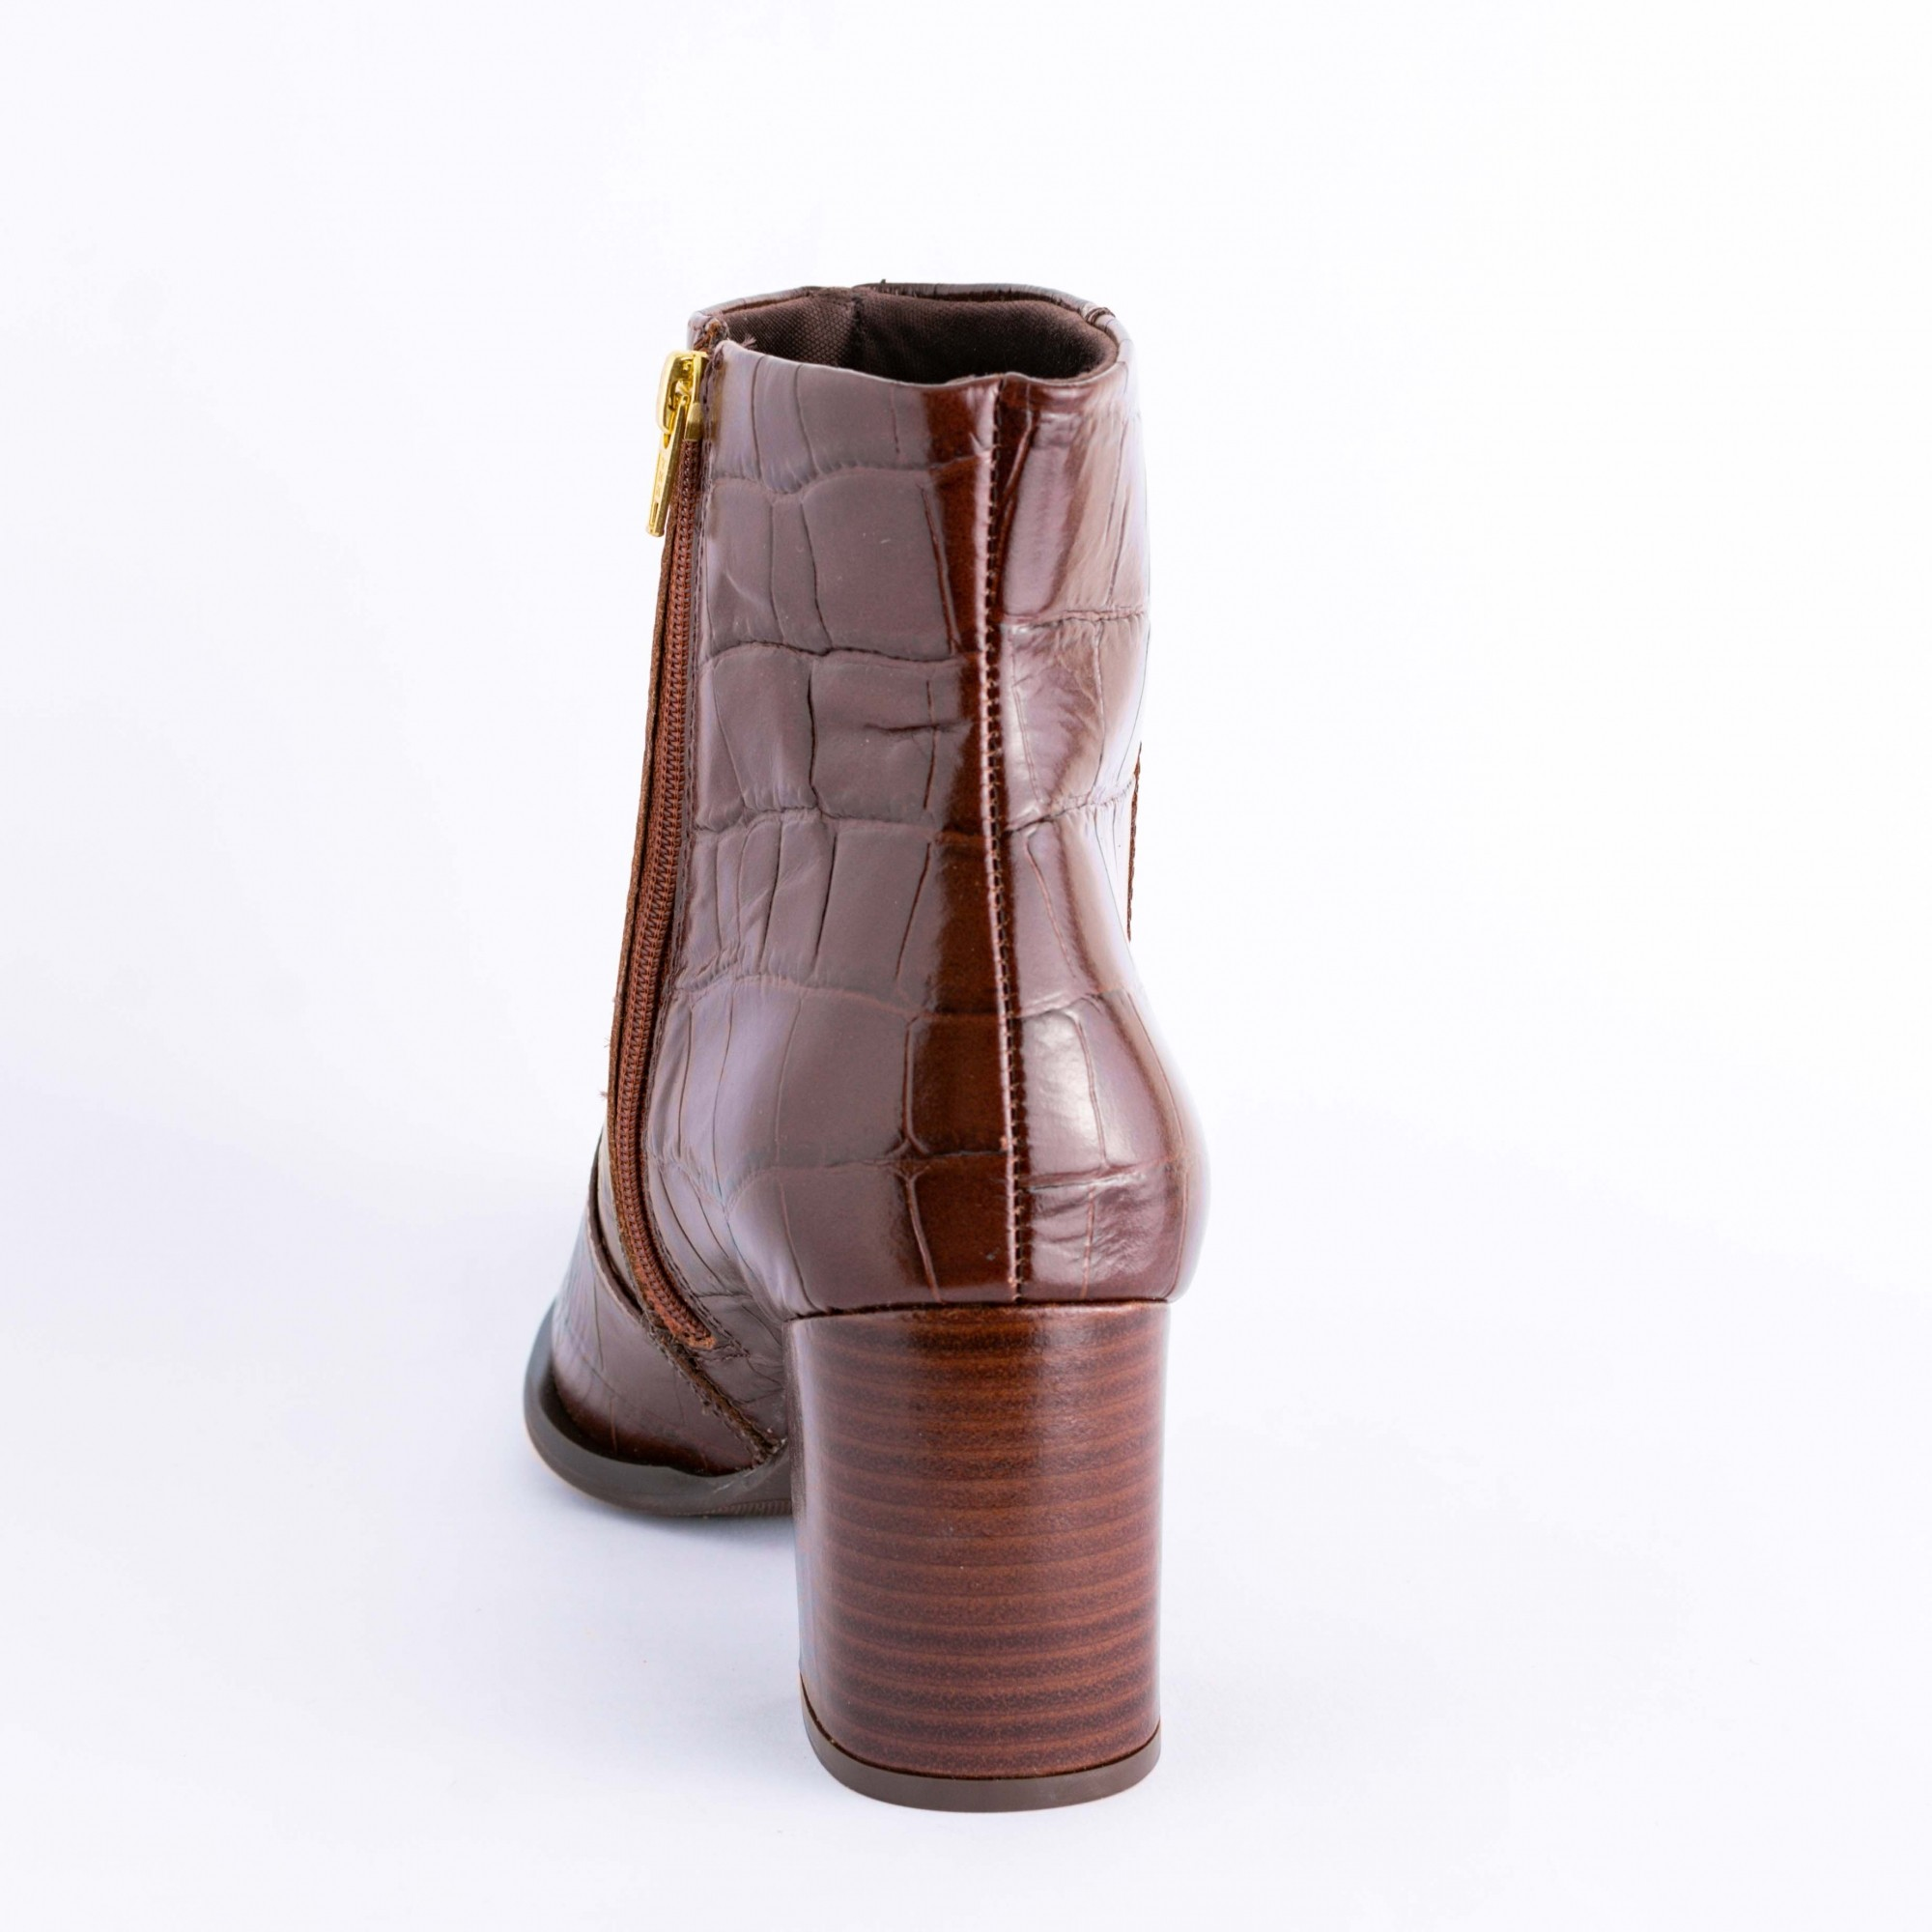 Bota Cano Curto Croco Marron